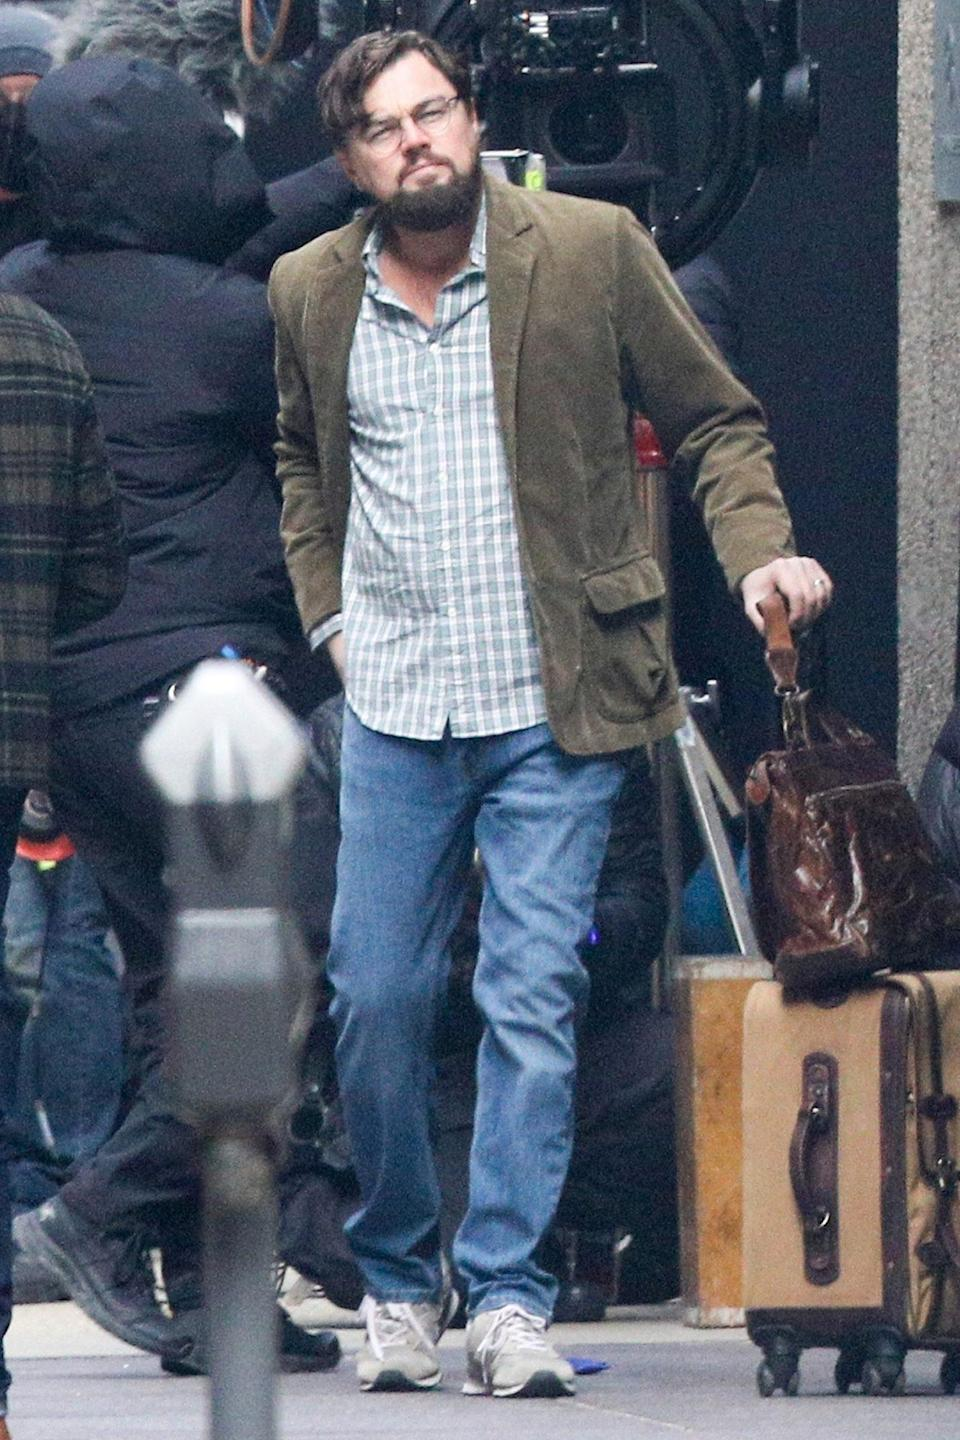 <p>Leonardo DiCaprio gets into character while filming a scene for <em>Don't Look Up</em> in downtown Boston on Monday. </p>